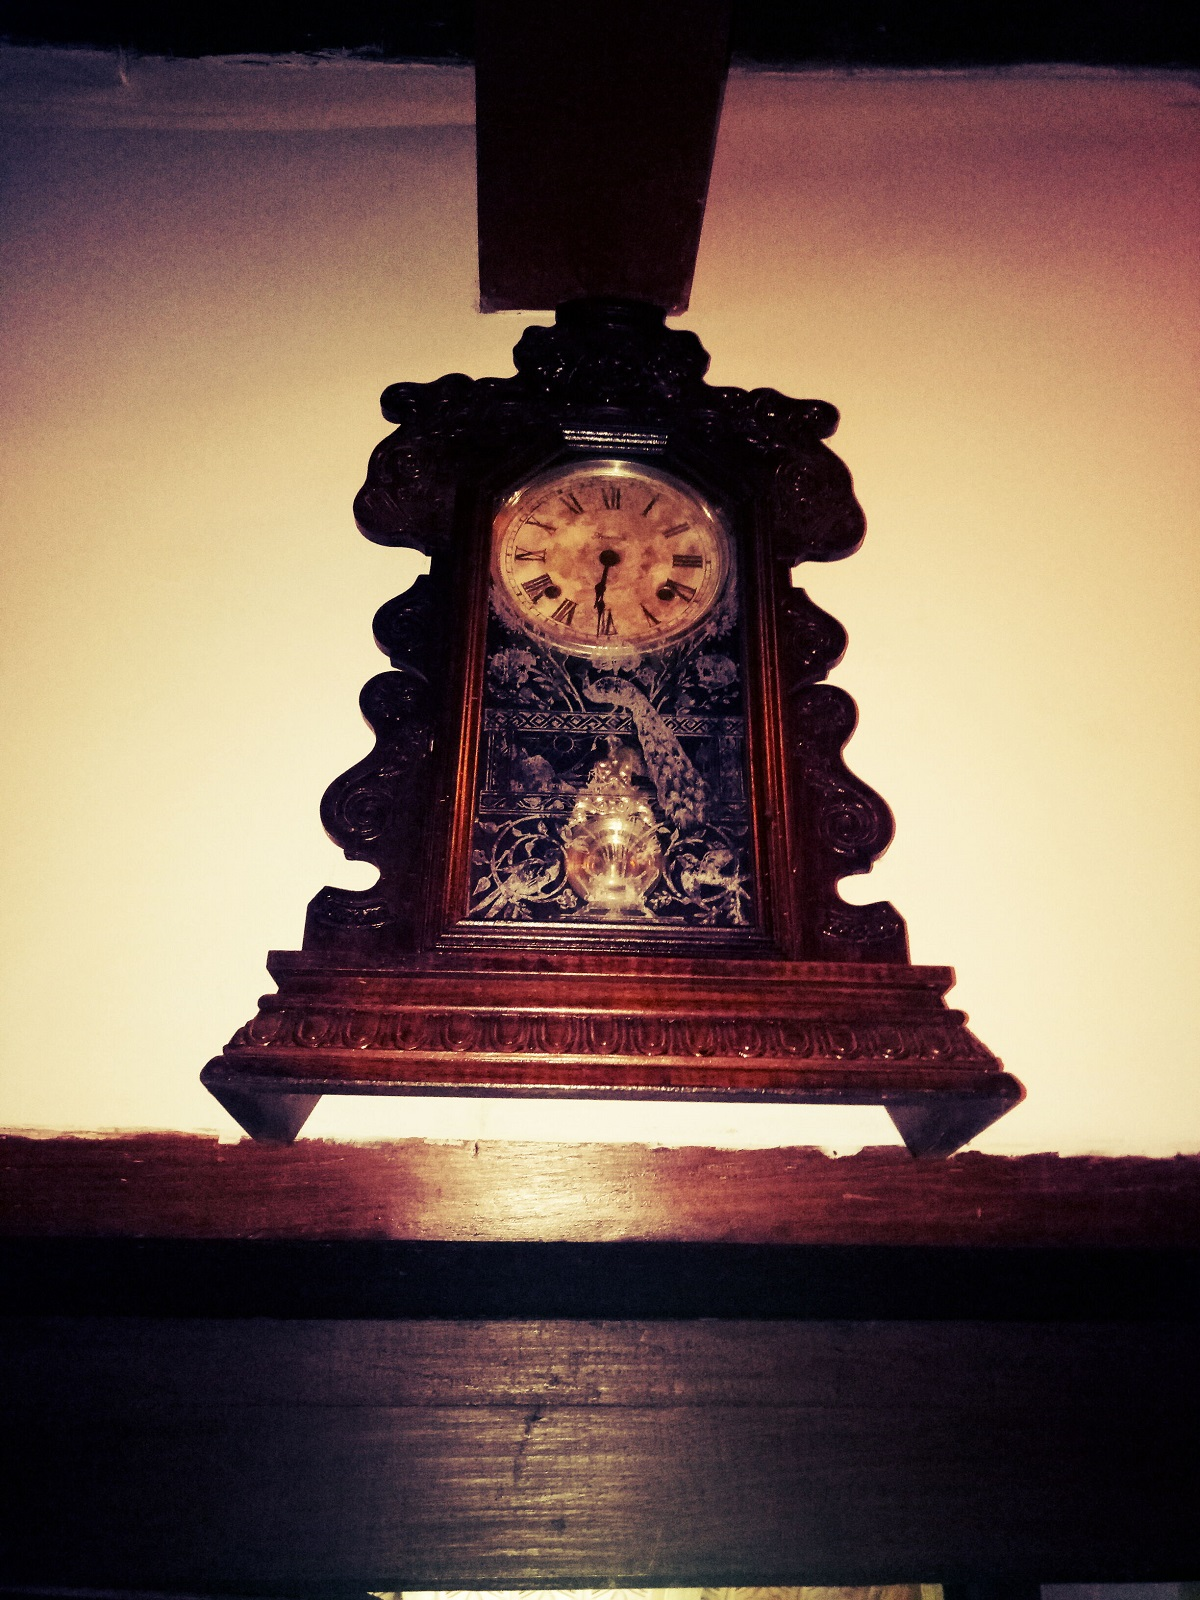 Ancient watch